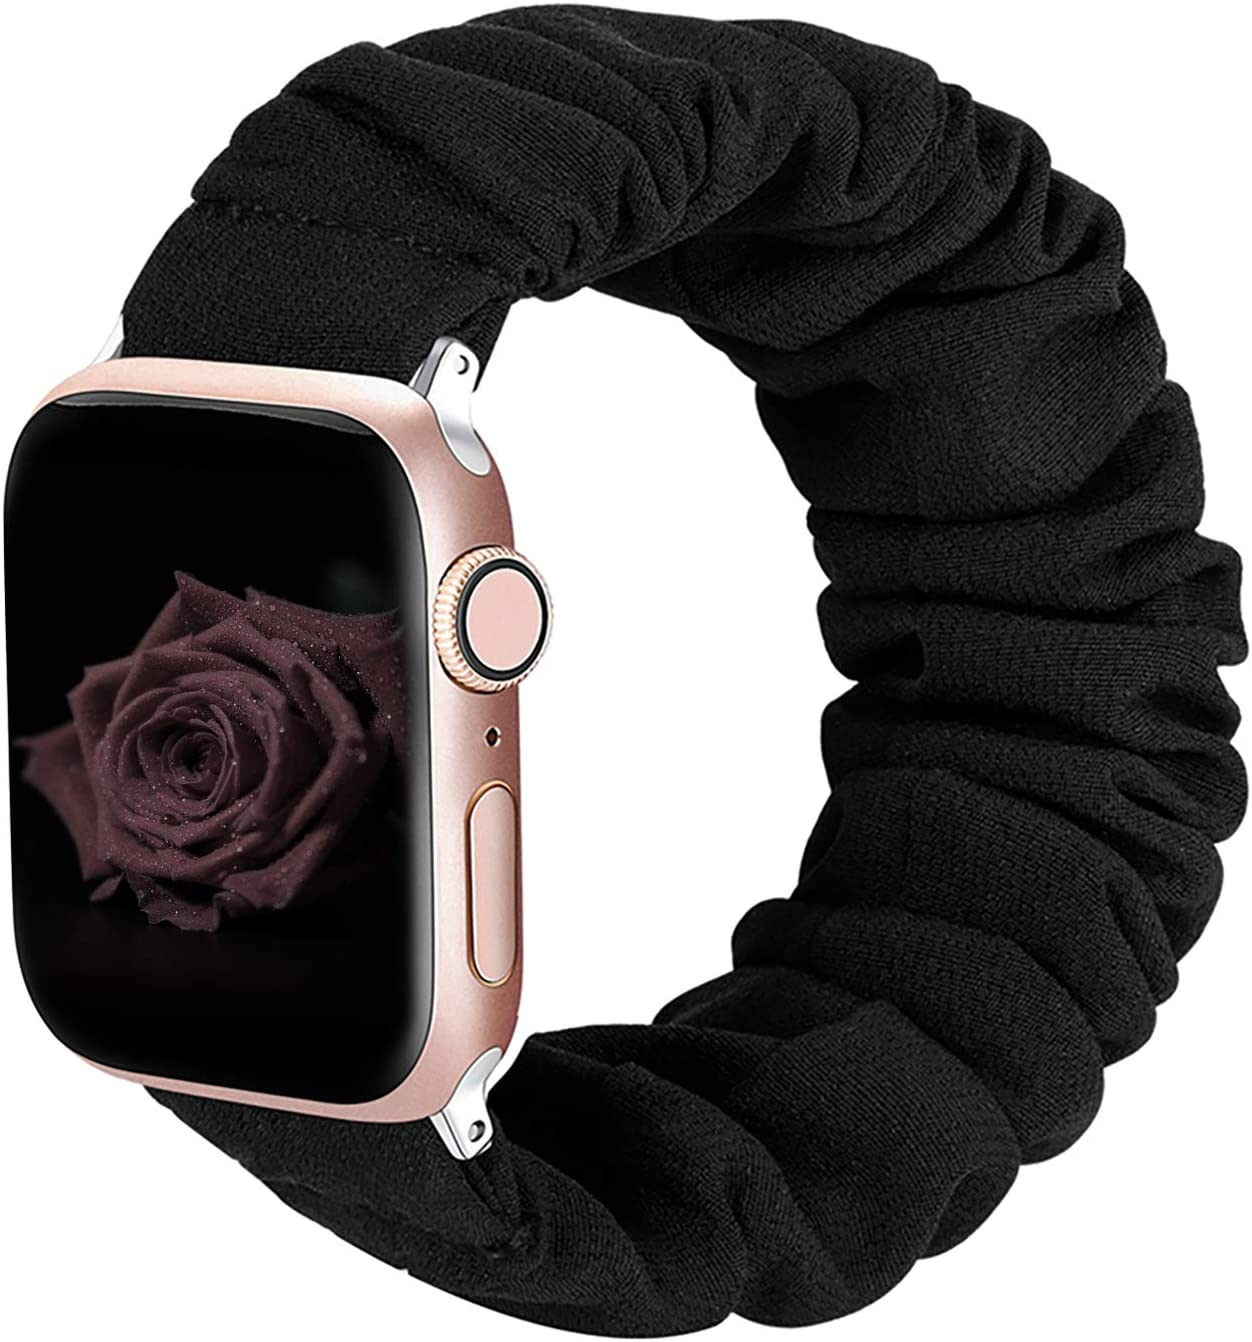 ALNBO Compatible with Apple Watch Band 38mm 40mm Soft Floral Fabric Elastic Scrunchies iWatch Bands for Apple Watch Series 5,4,3,2,1 38mm/40mm Black S